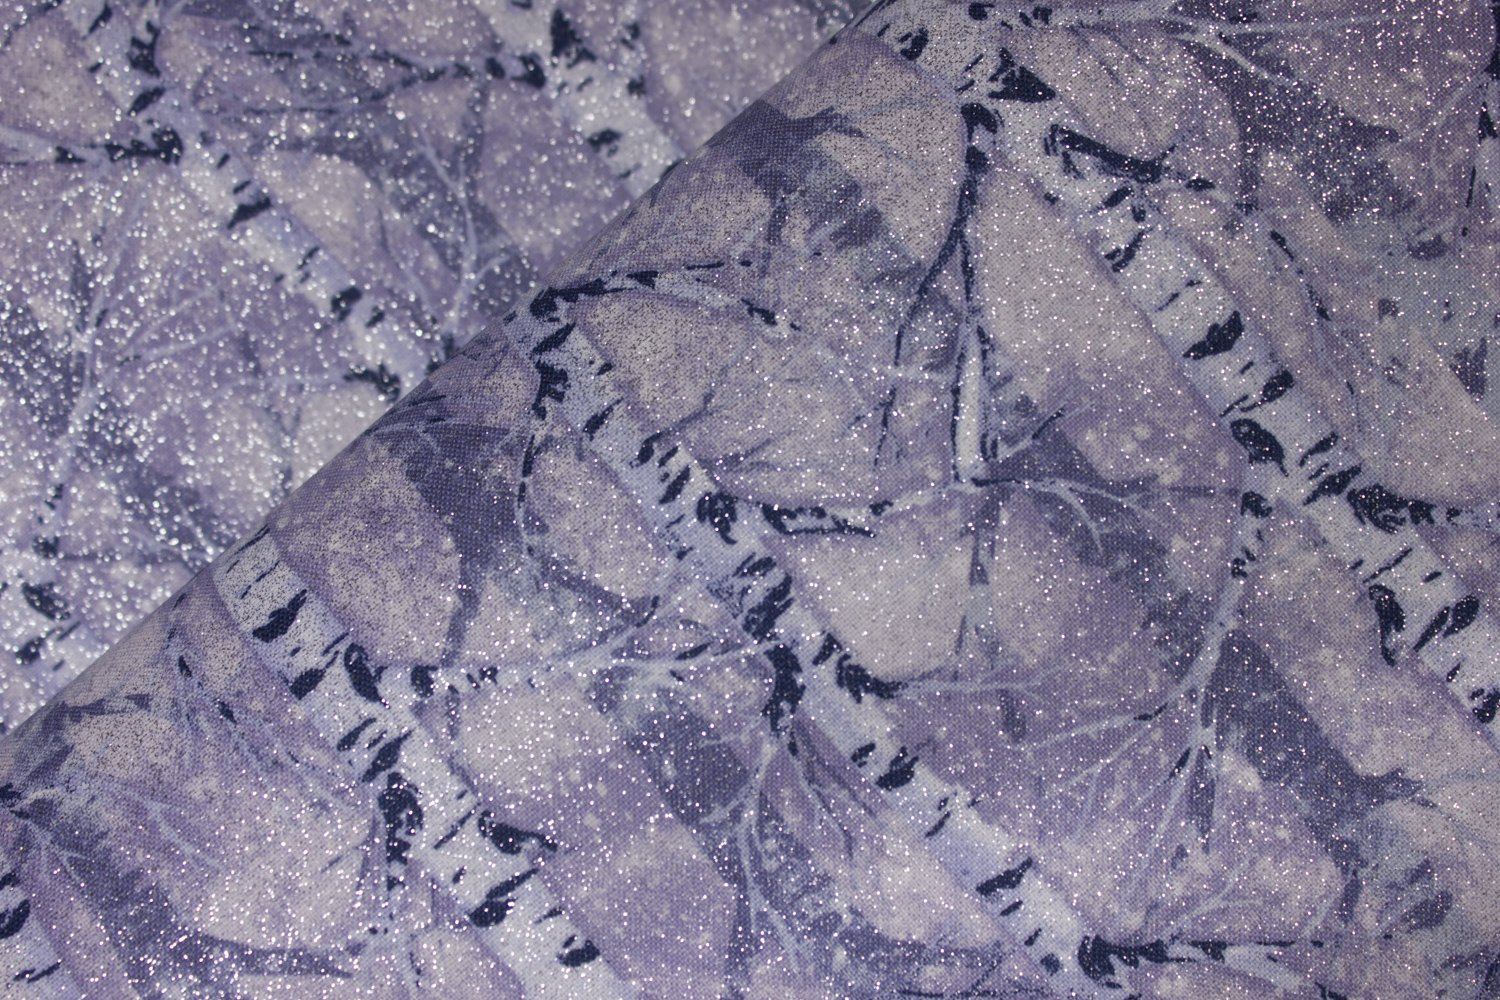 Bluish Purple and White Birch Trees in Winter with Silver Glitter